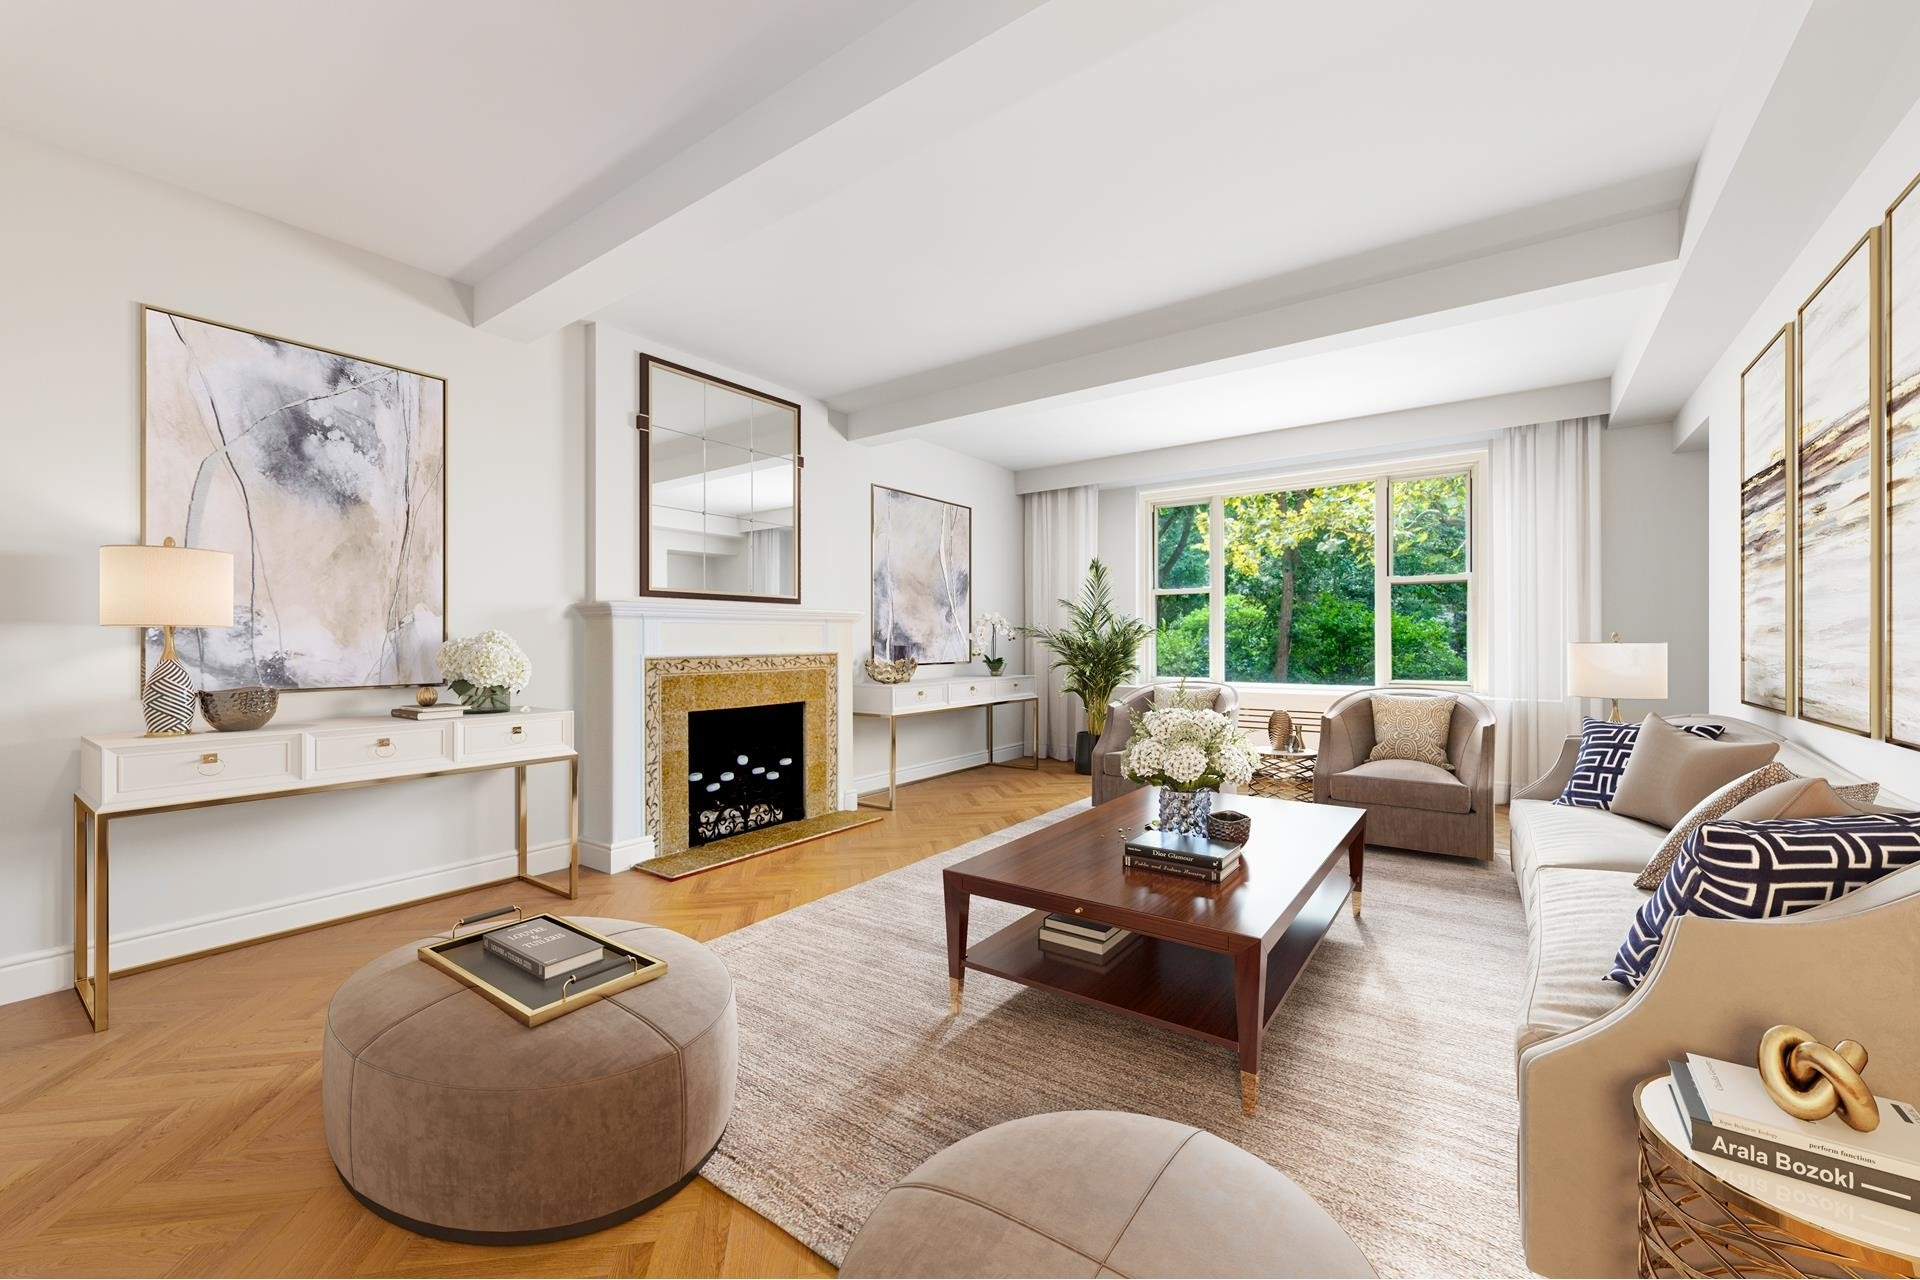 Property at 45 Gramercy Pk. Ten. Corp, 45 Gramercy Park North, 1A/2A Gramercy Park, New York, NY 10010